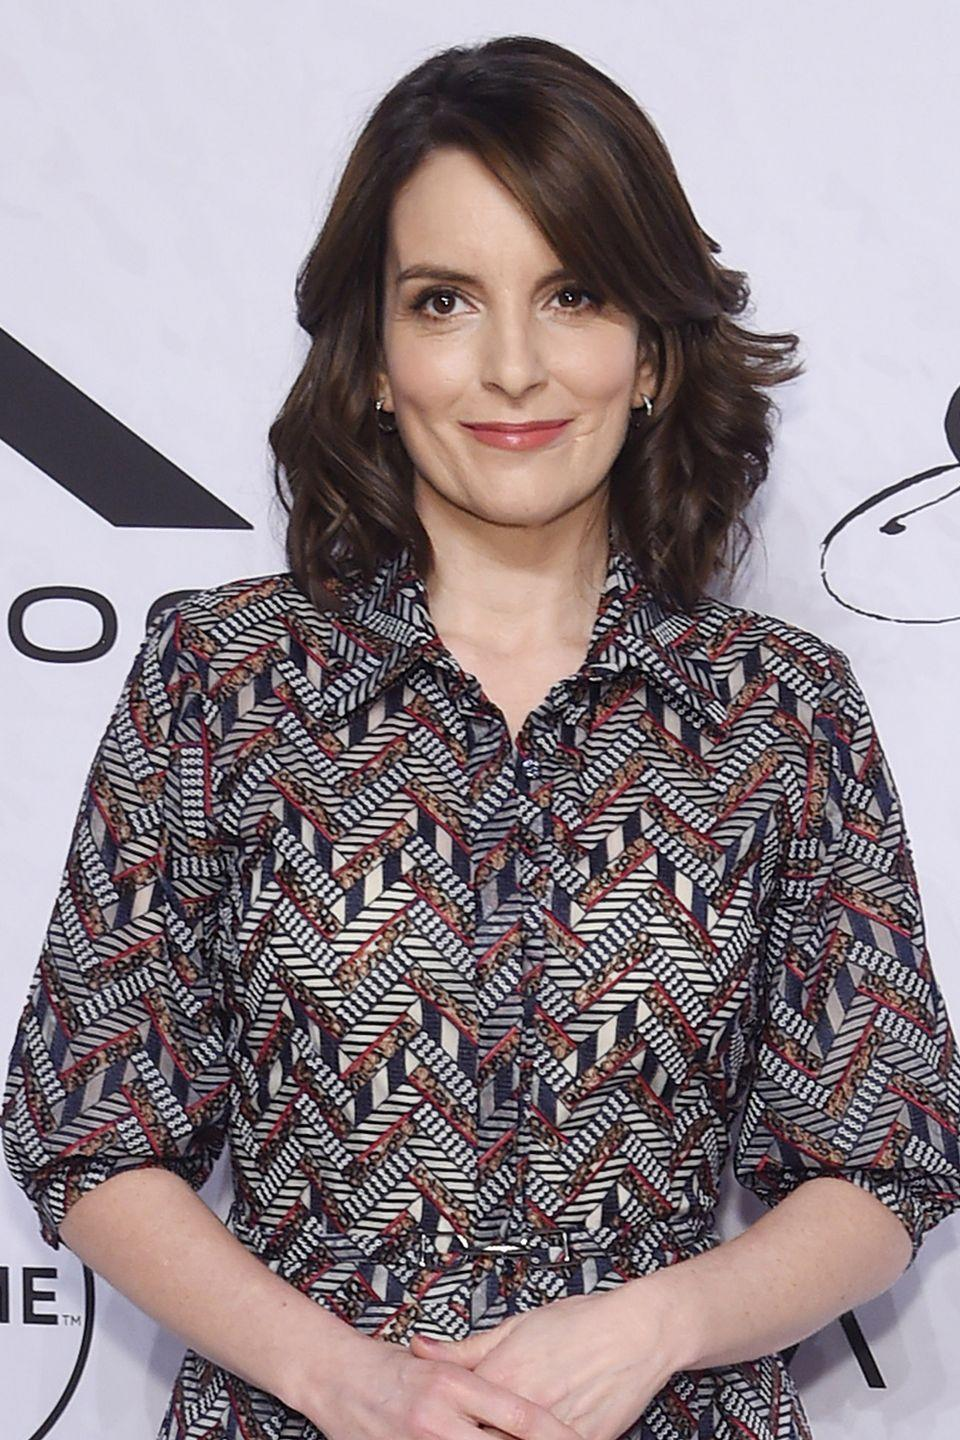 """<p>The comedic actress recently revealed to David Letterman that she didn't <a href=""""https://www.huffingtonpost.com/2009/10/15/tina-fey-24-year-old-virg_n_321807.html"""" rel=""""nofollow noopener"""" target=""""_blank"""" data-ylk=""""slk:lose her virginity until the age of 24"""" class=""""link rapid-noclick-resp"""">lose her virginity until the age of 24</a> after marrying her husband, Jeff Richmond. The late show host was reading off a couple of names of celebrities who hadn't had sex before marriage, and when he brought her name up she said, """"[I] couldn't give it away. That's just good, Christian values, or, being homely.""""</p>"""